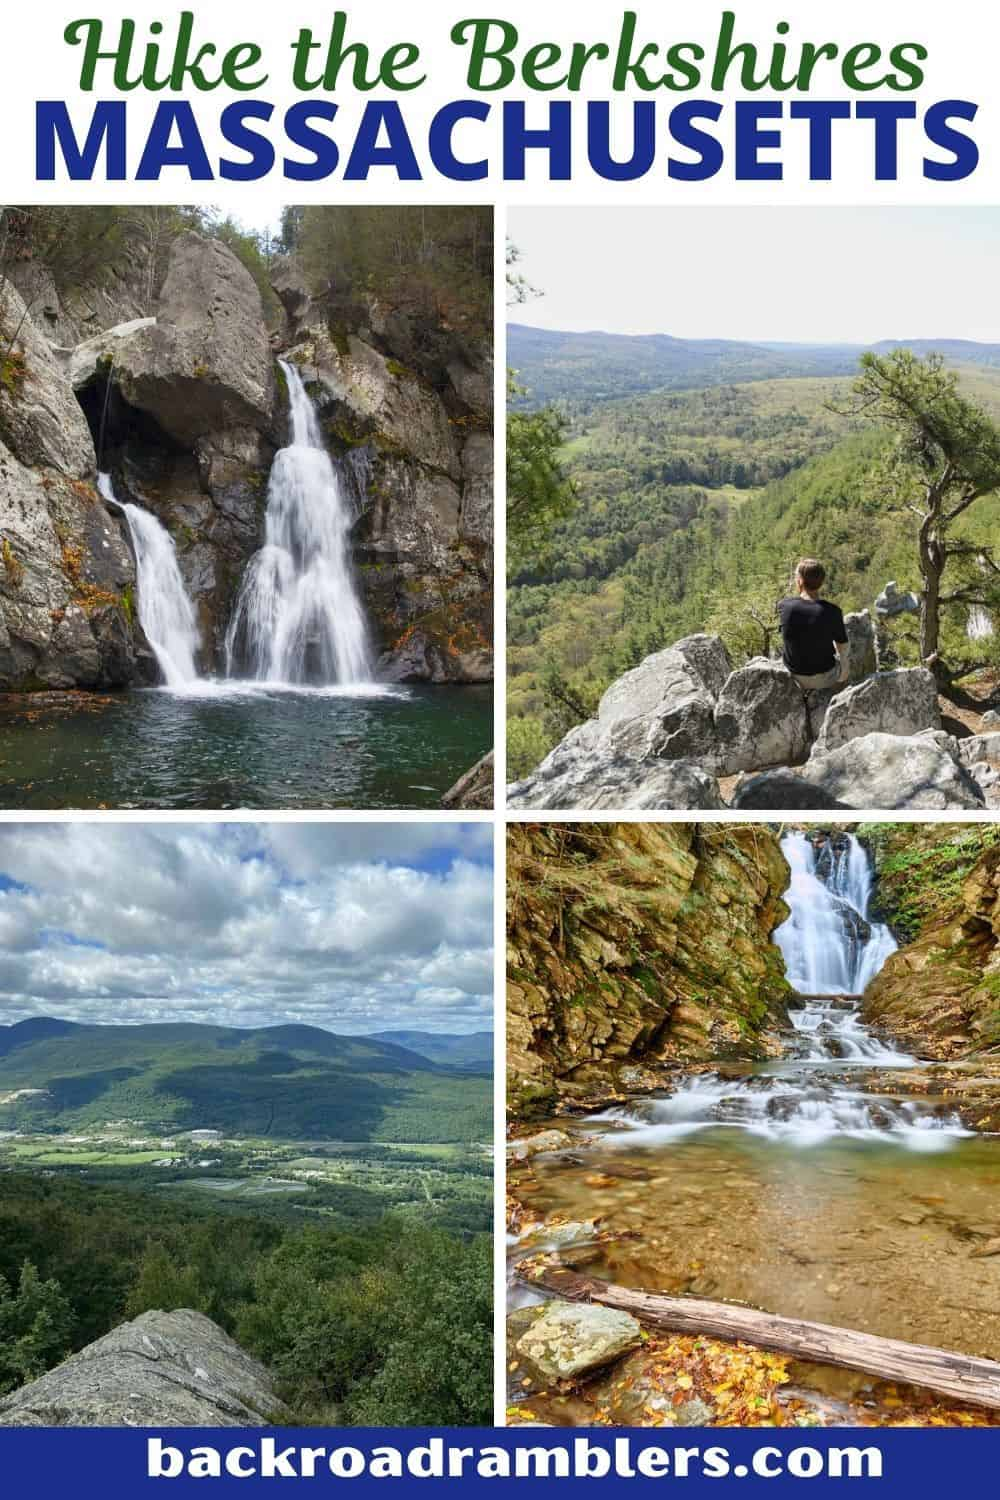 A collage of photos featuring the best day hiking in the Berkshires of Masachussets.